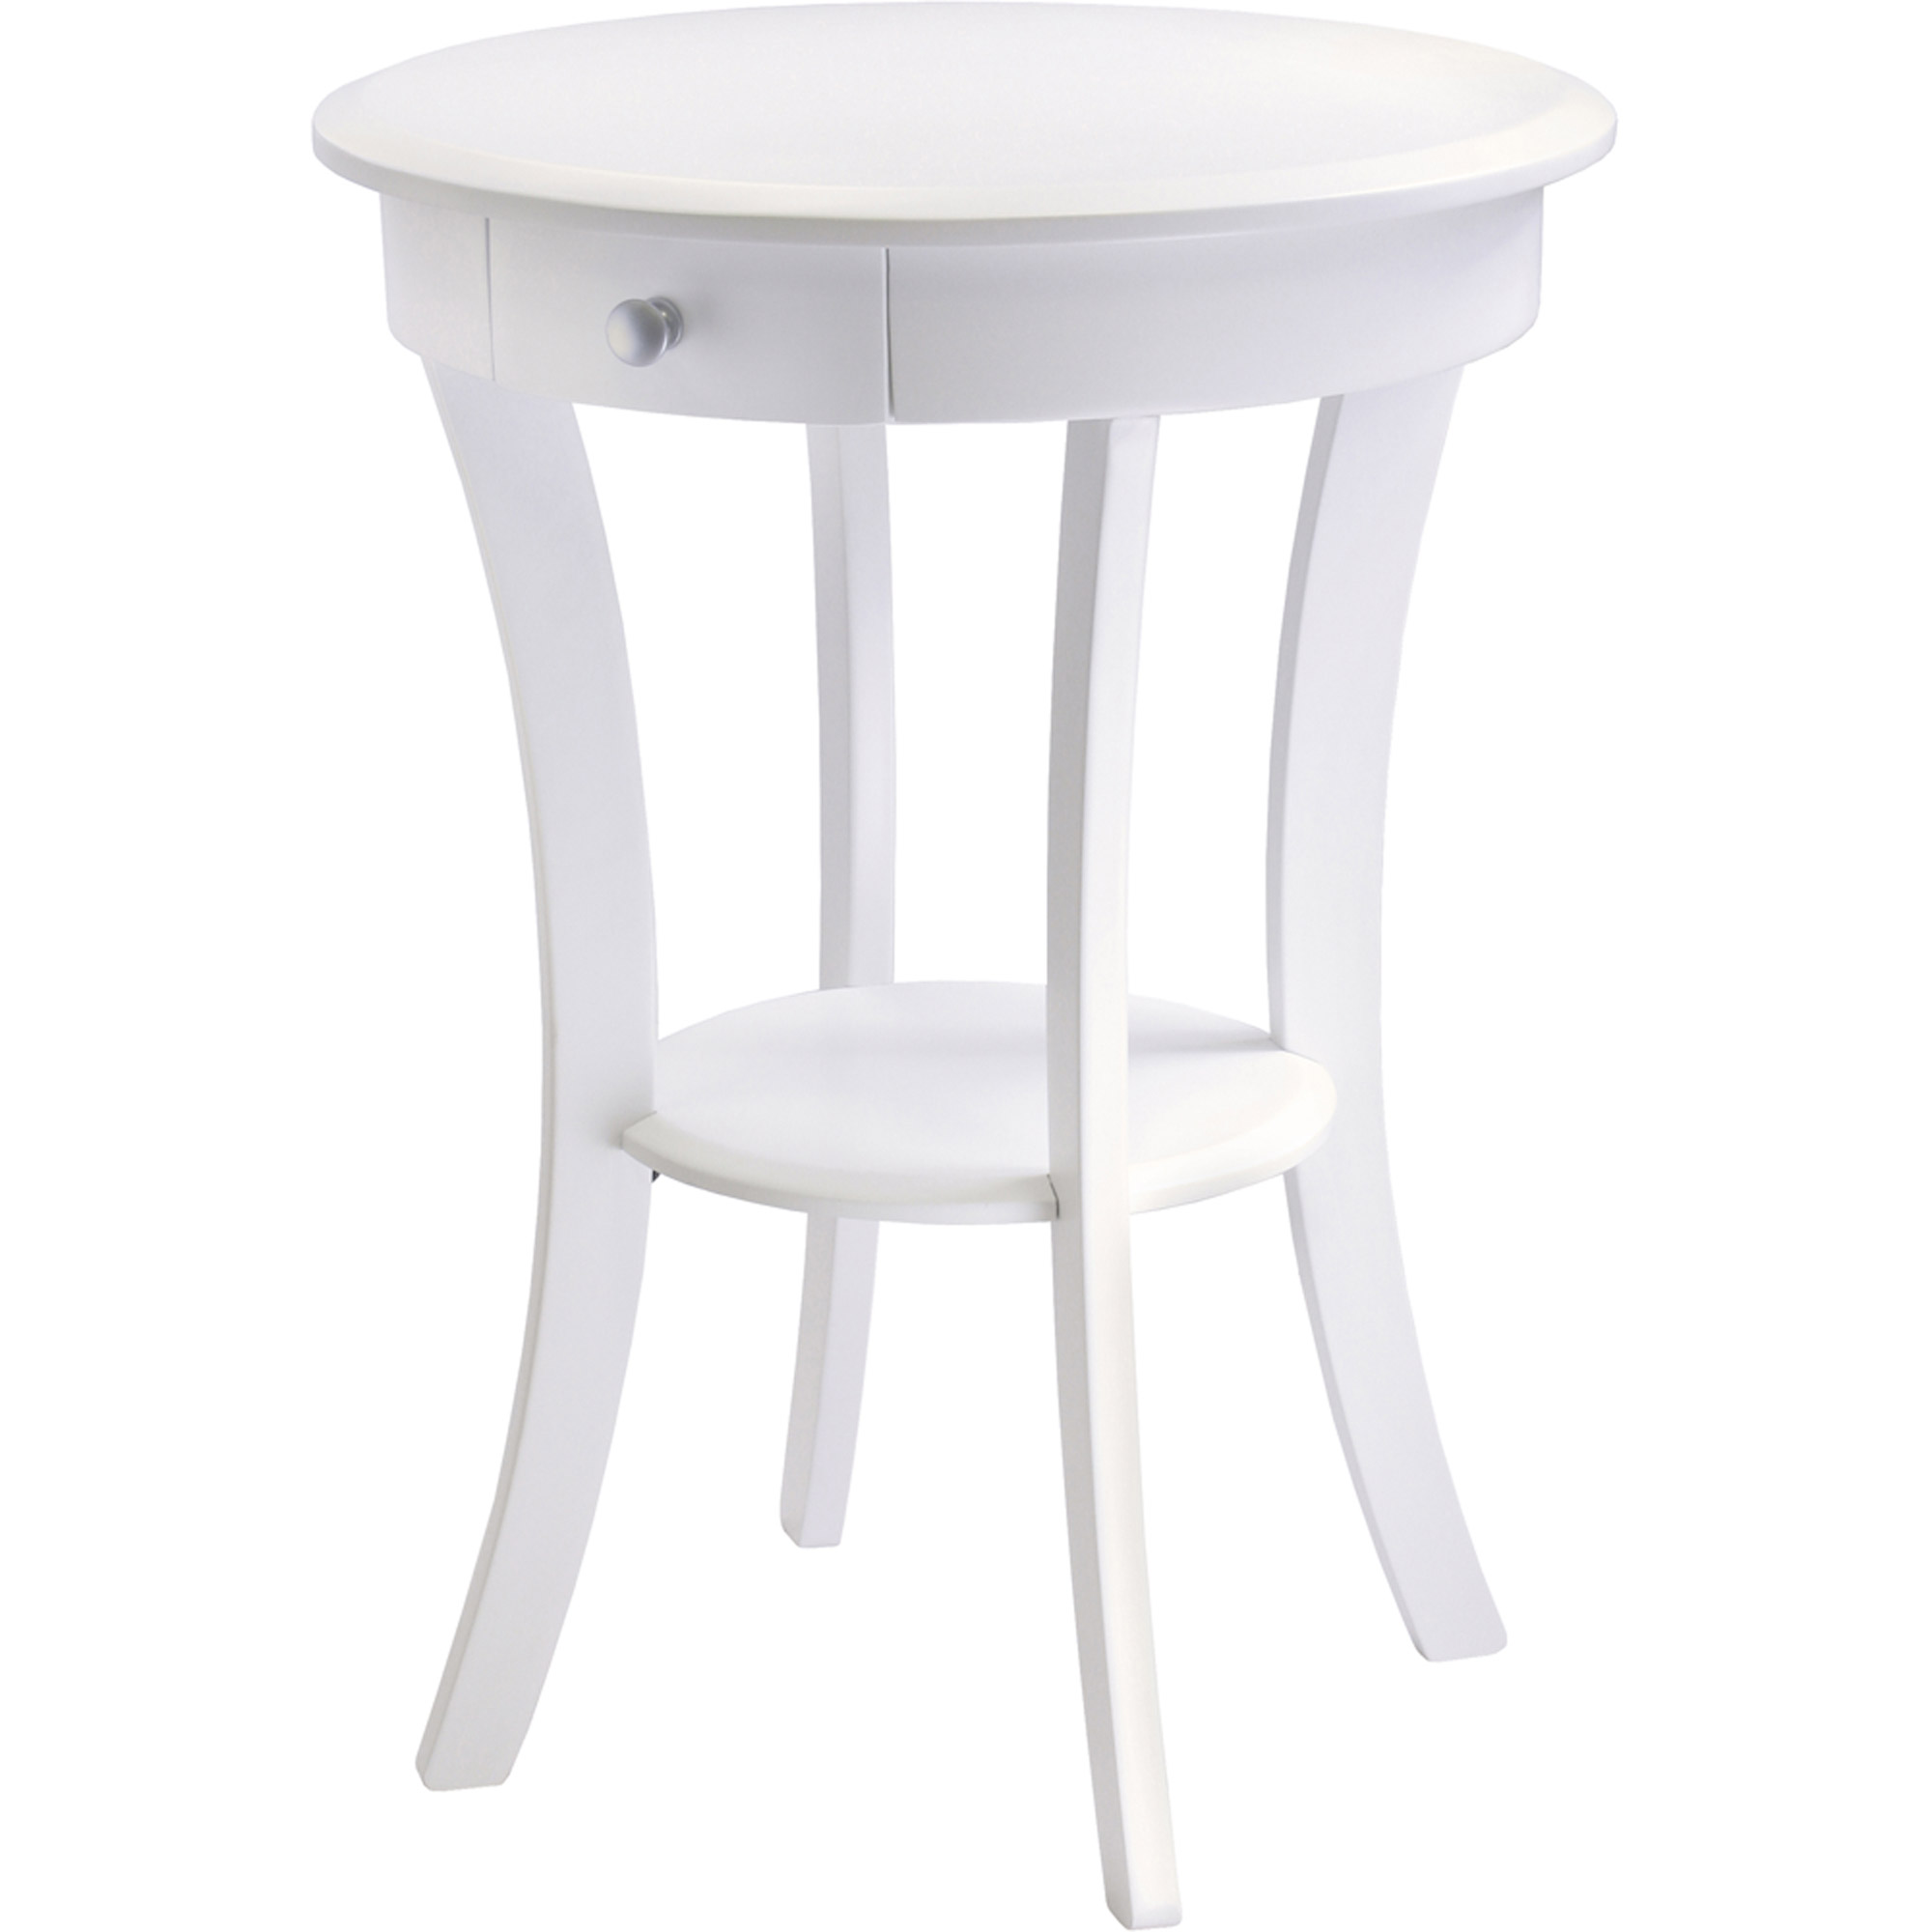 sasha round accent table grey wood glass coffee pottery barn side tables for living room small top metal and end inch tablecloth nursery nightstand style furniture the target